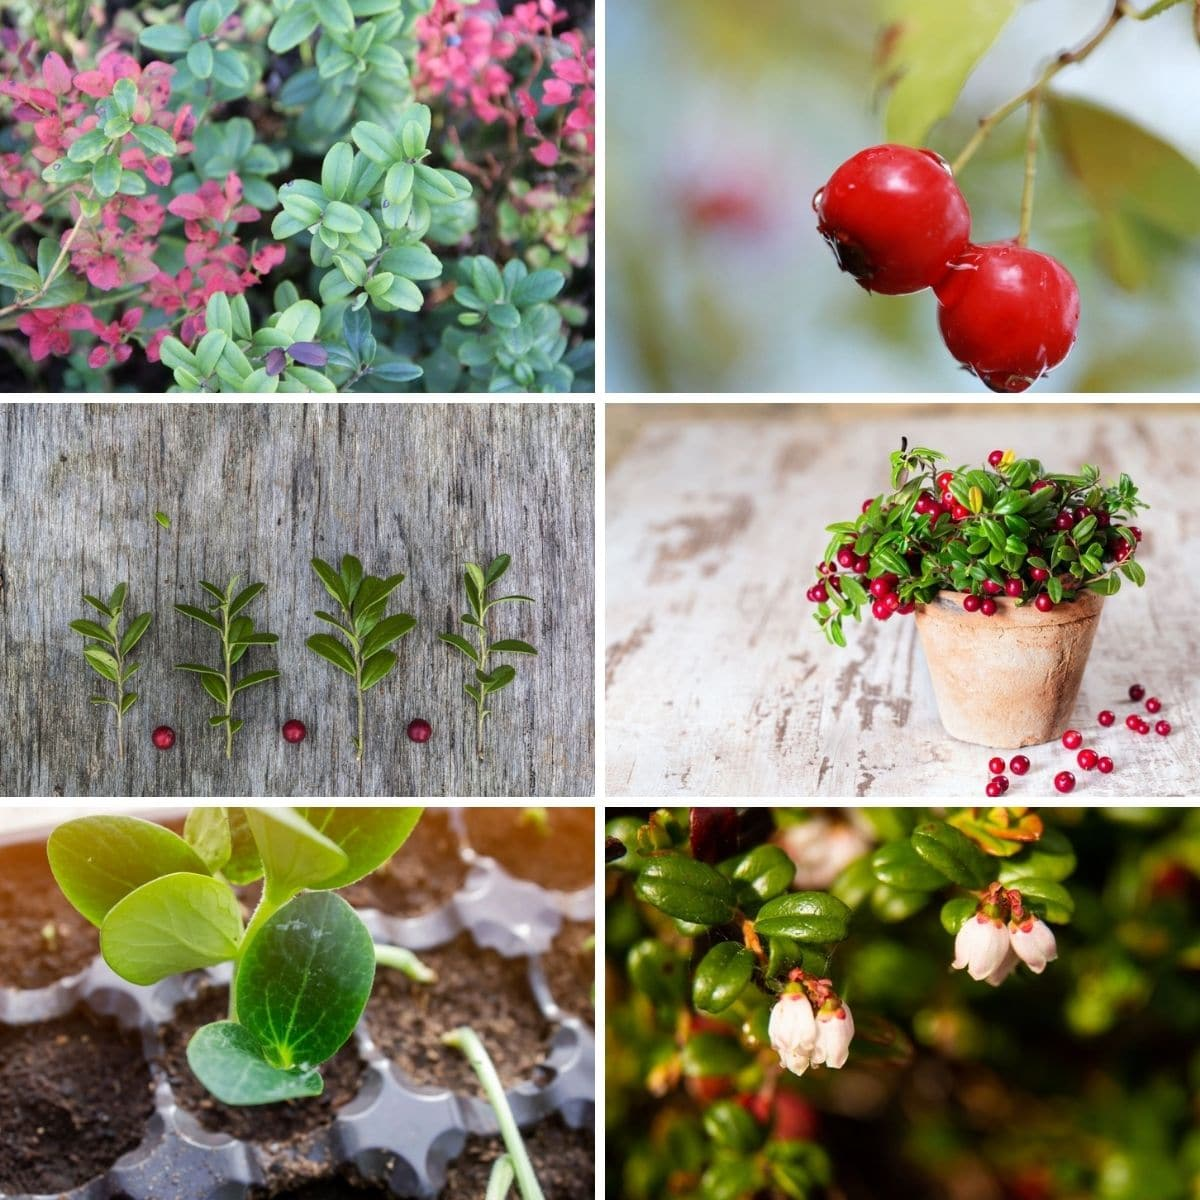 Collage photos featuring cranberry growing tips from the article.